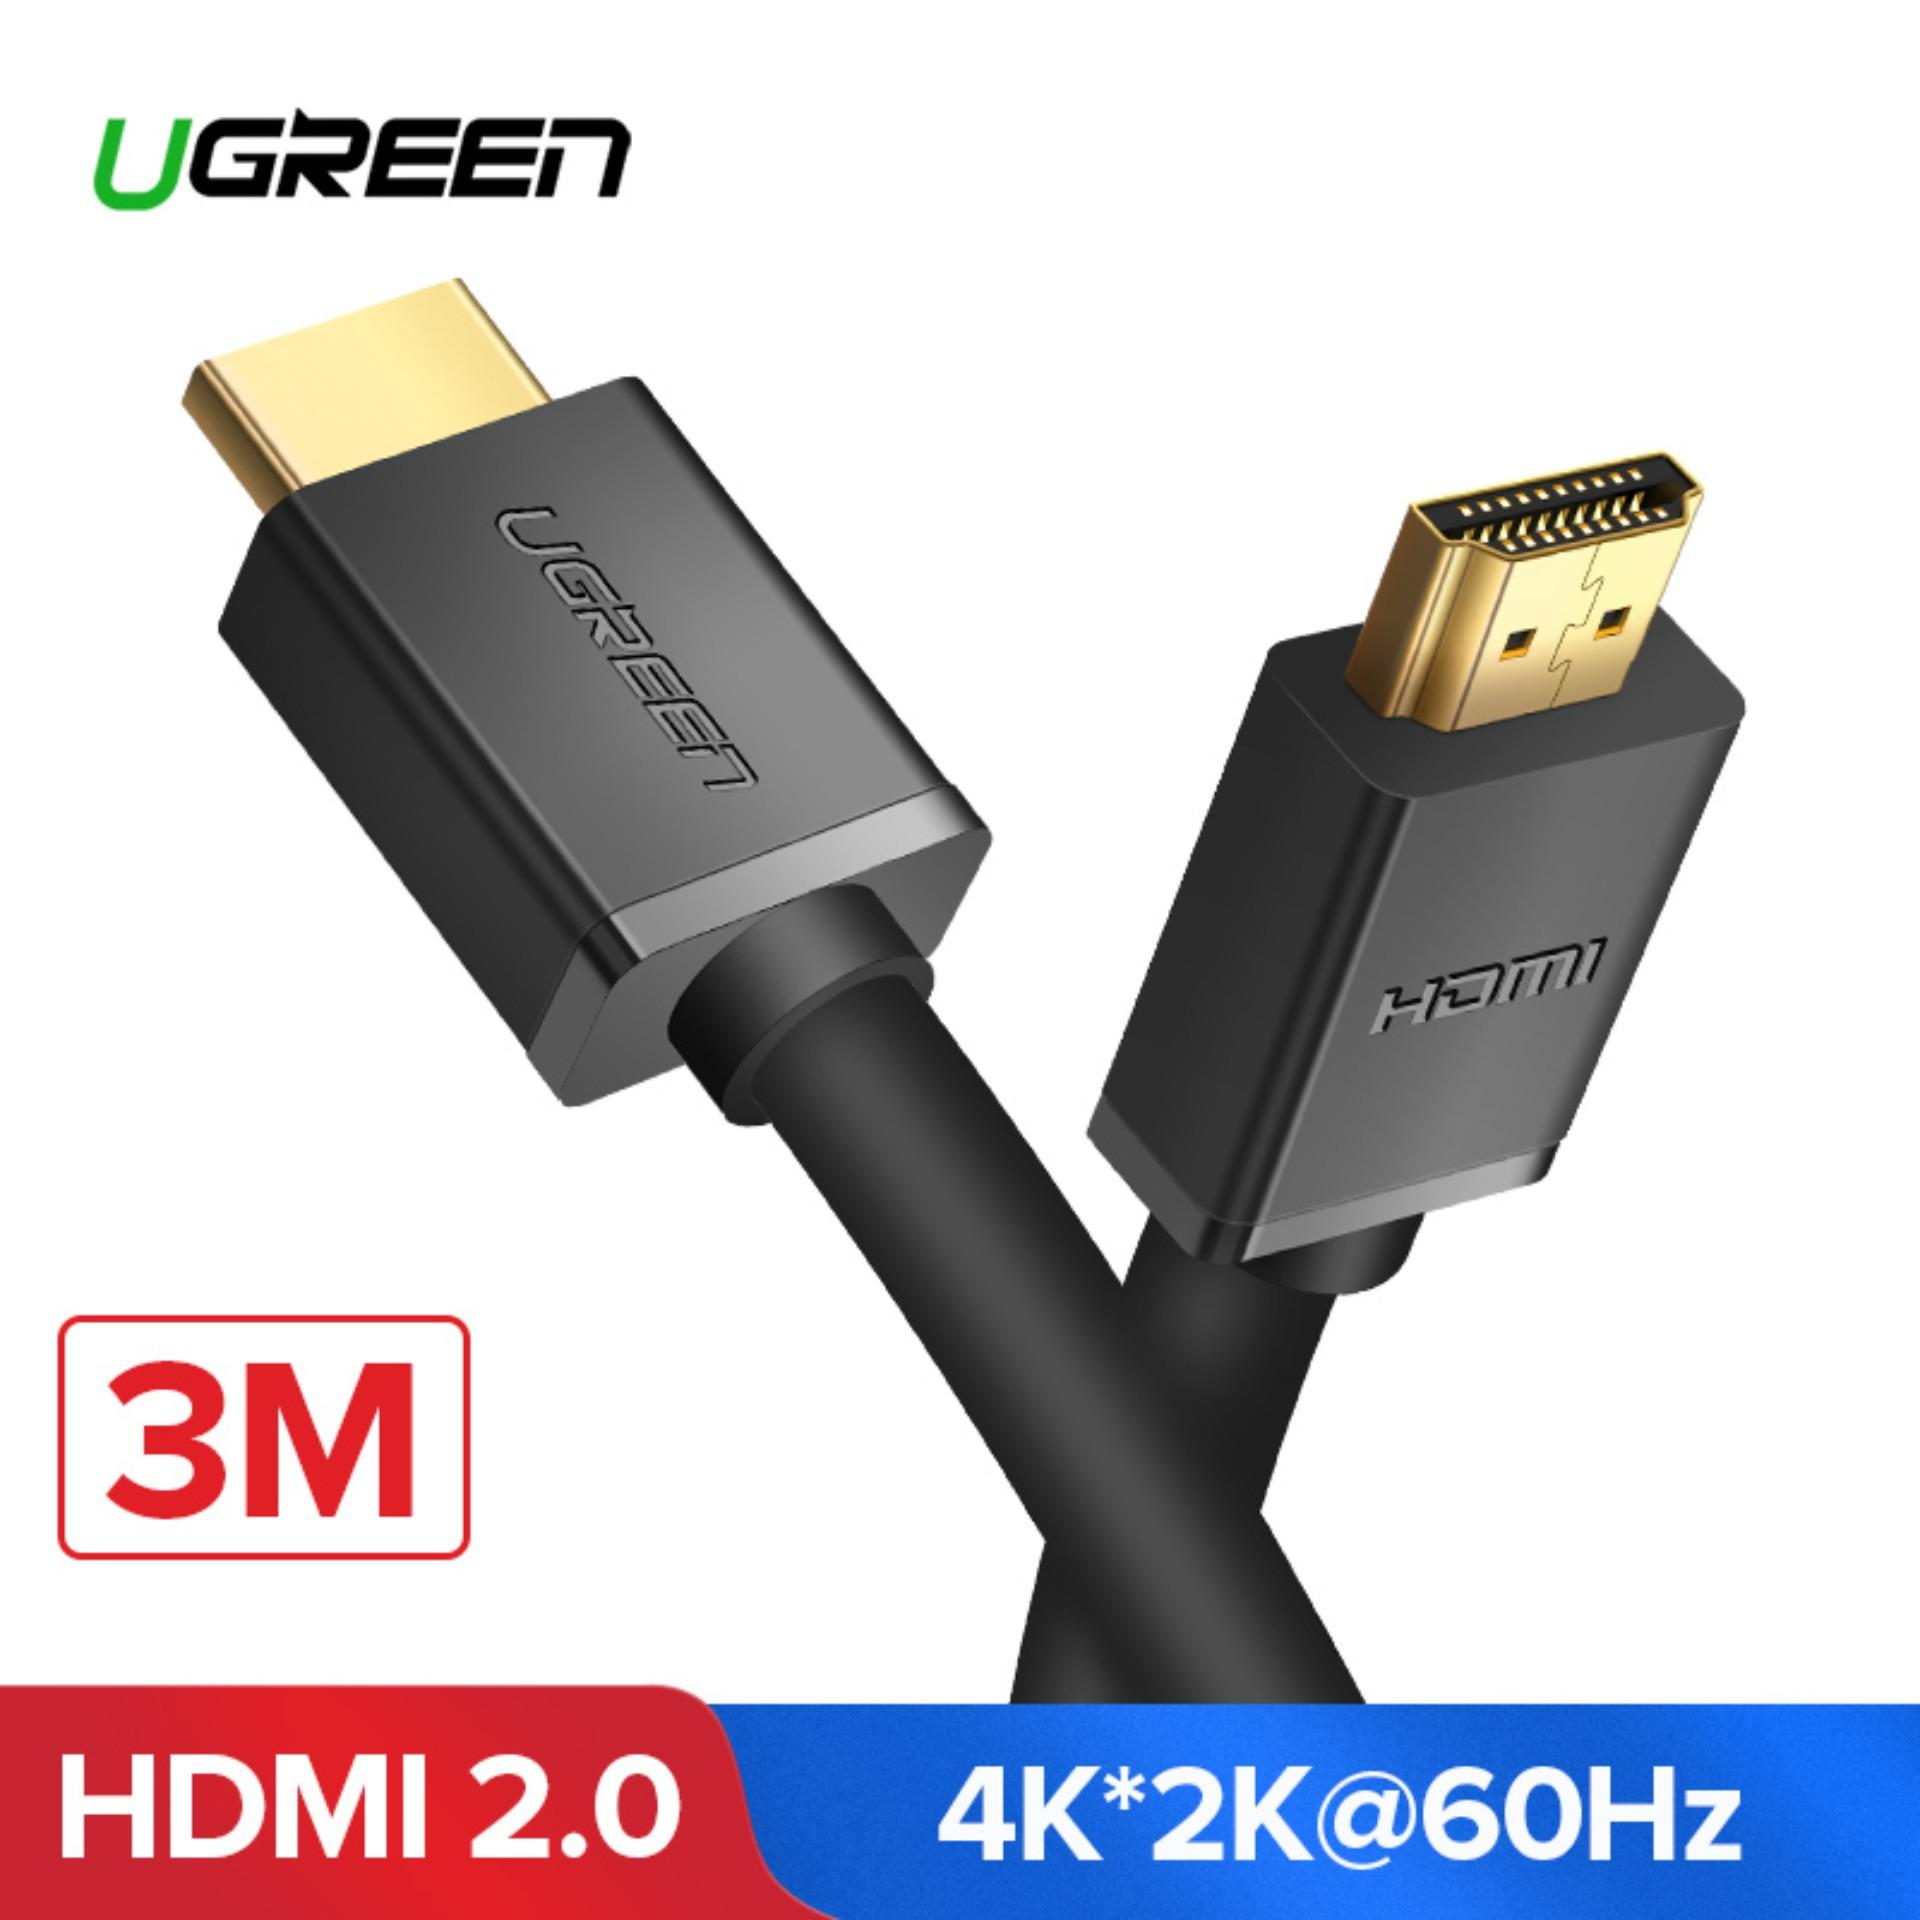 UGREEN 3Meter HDMI Cable 4K HDMI 2.0 Male to Male High Speed HDMI Adapter 3D for